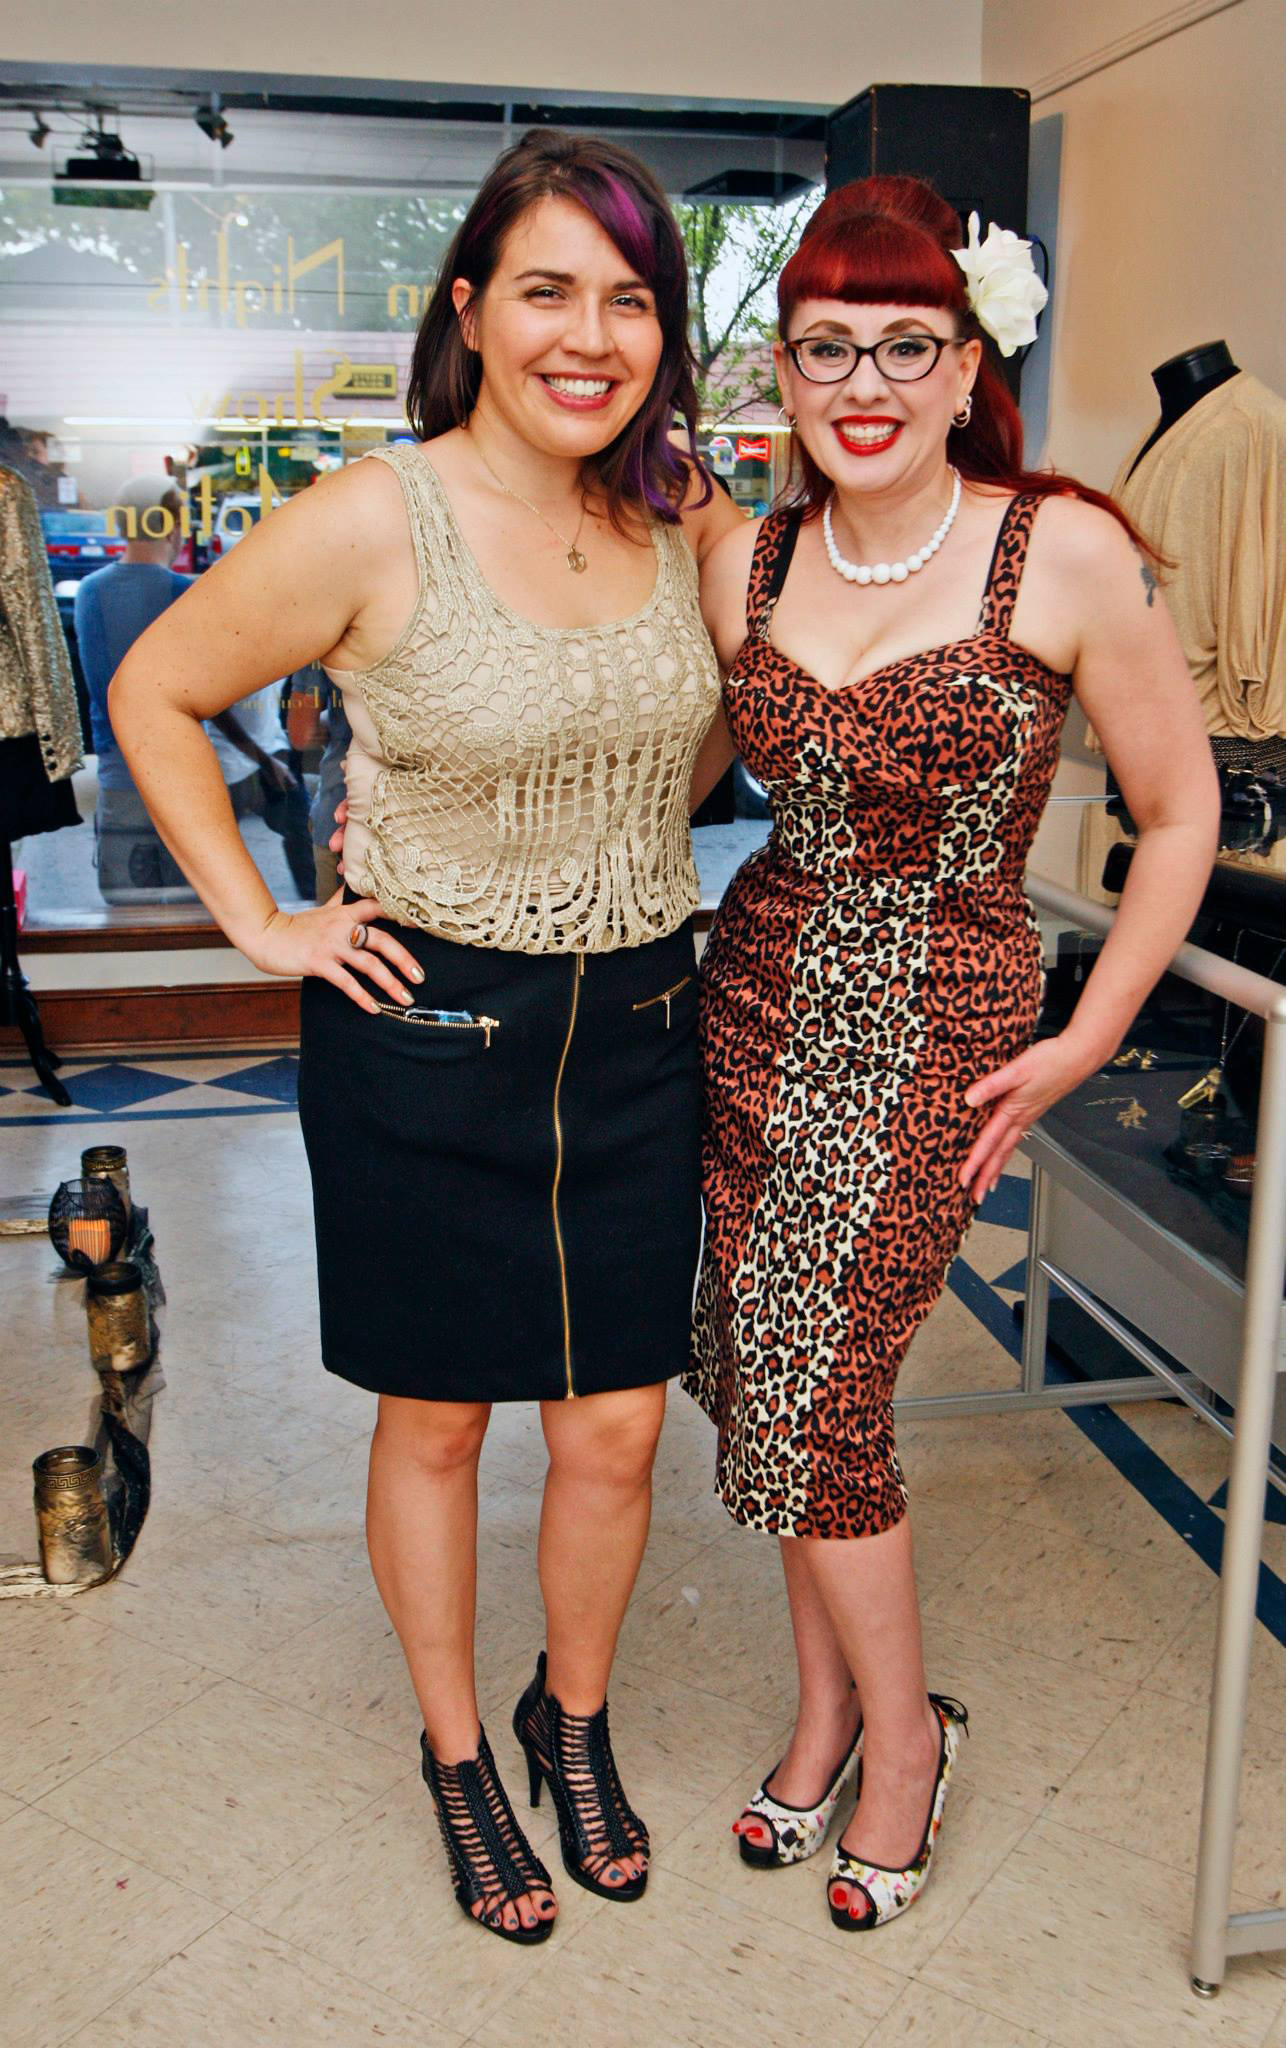 Me with my friend Gabi. The show was the talk of the town.